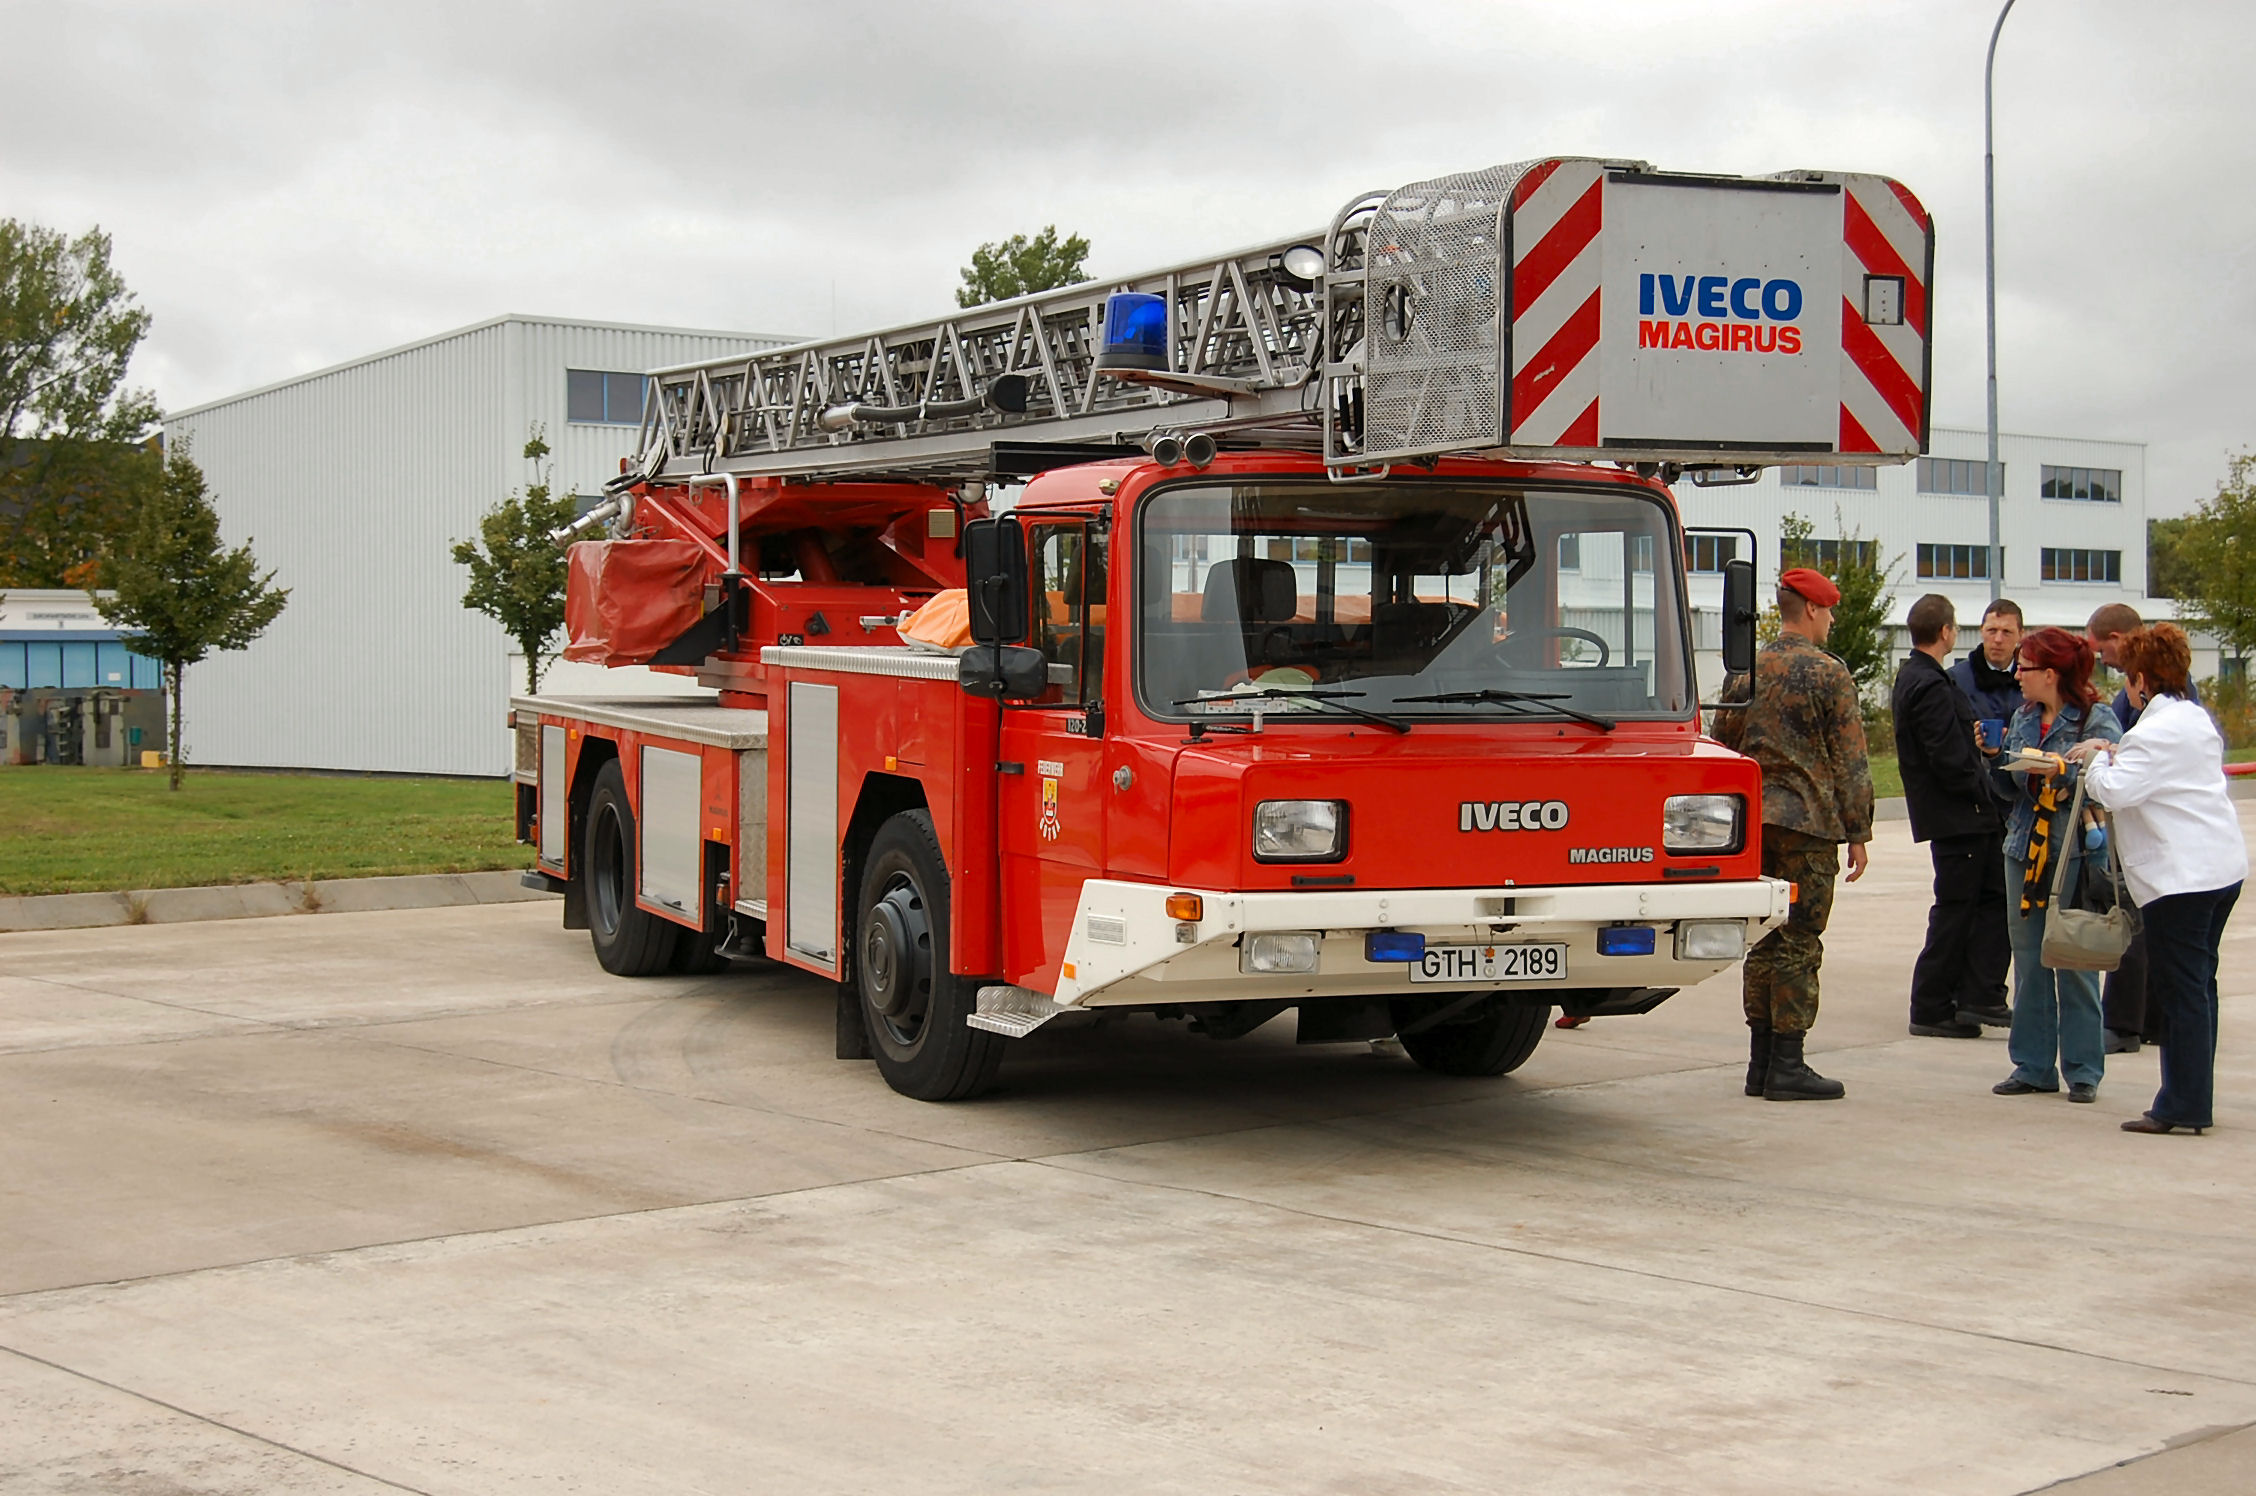 Iveco magirus photo - 1